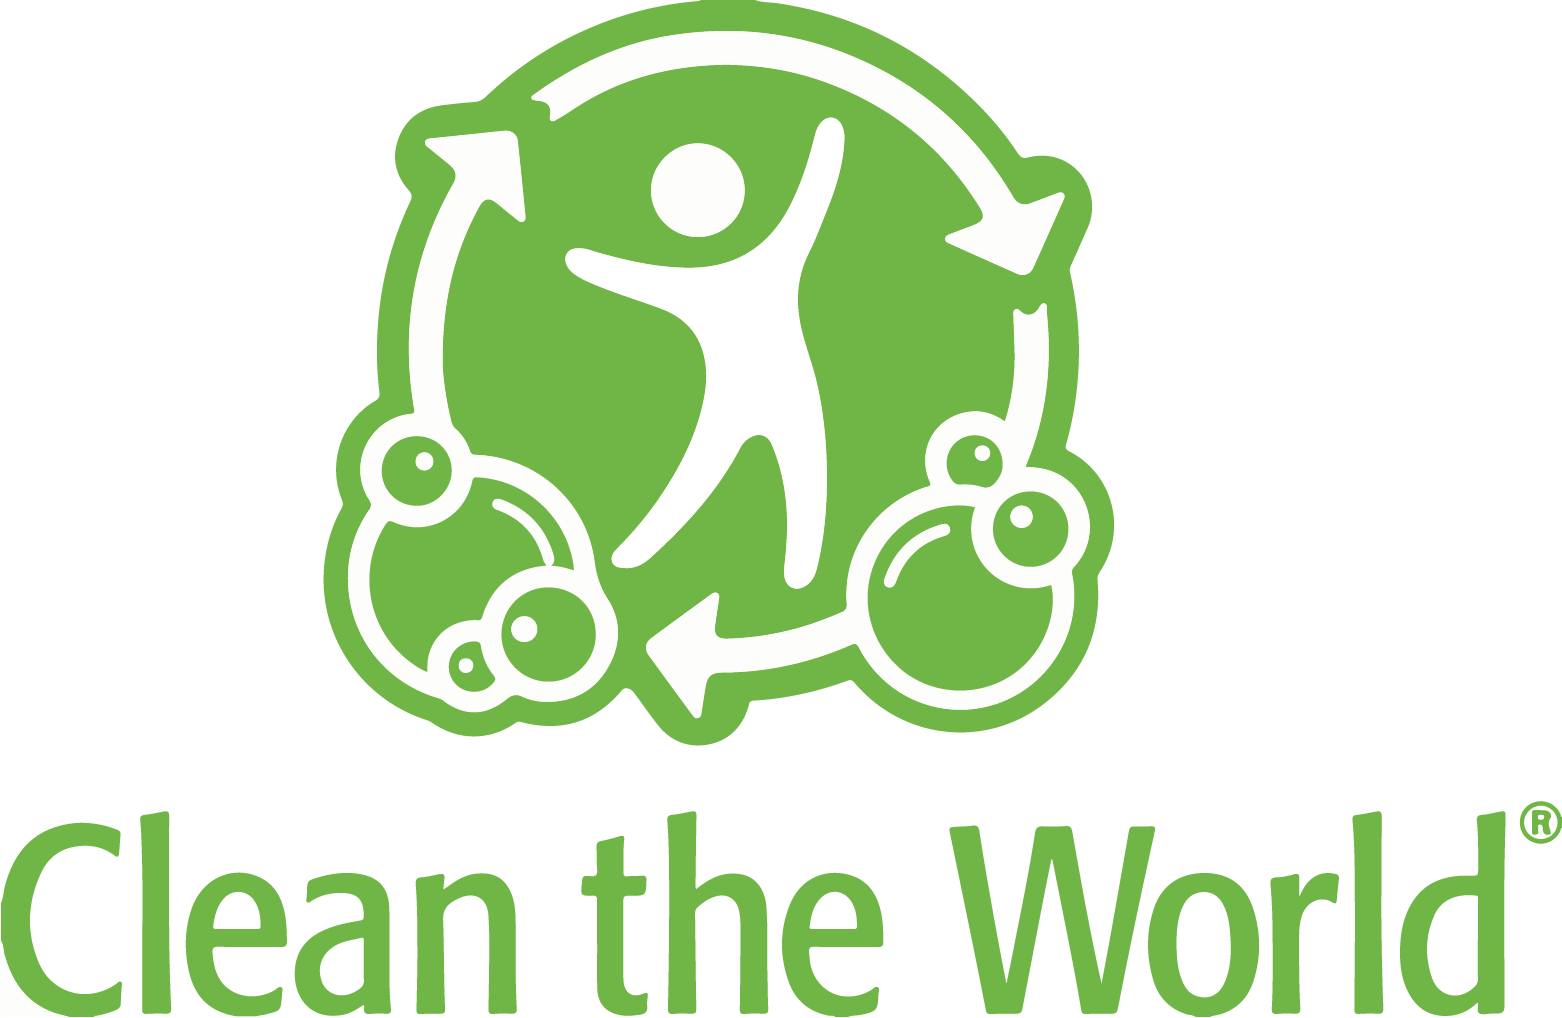 Green Partnerships - Clean the World